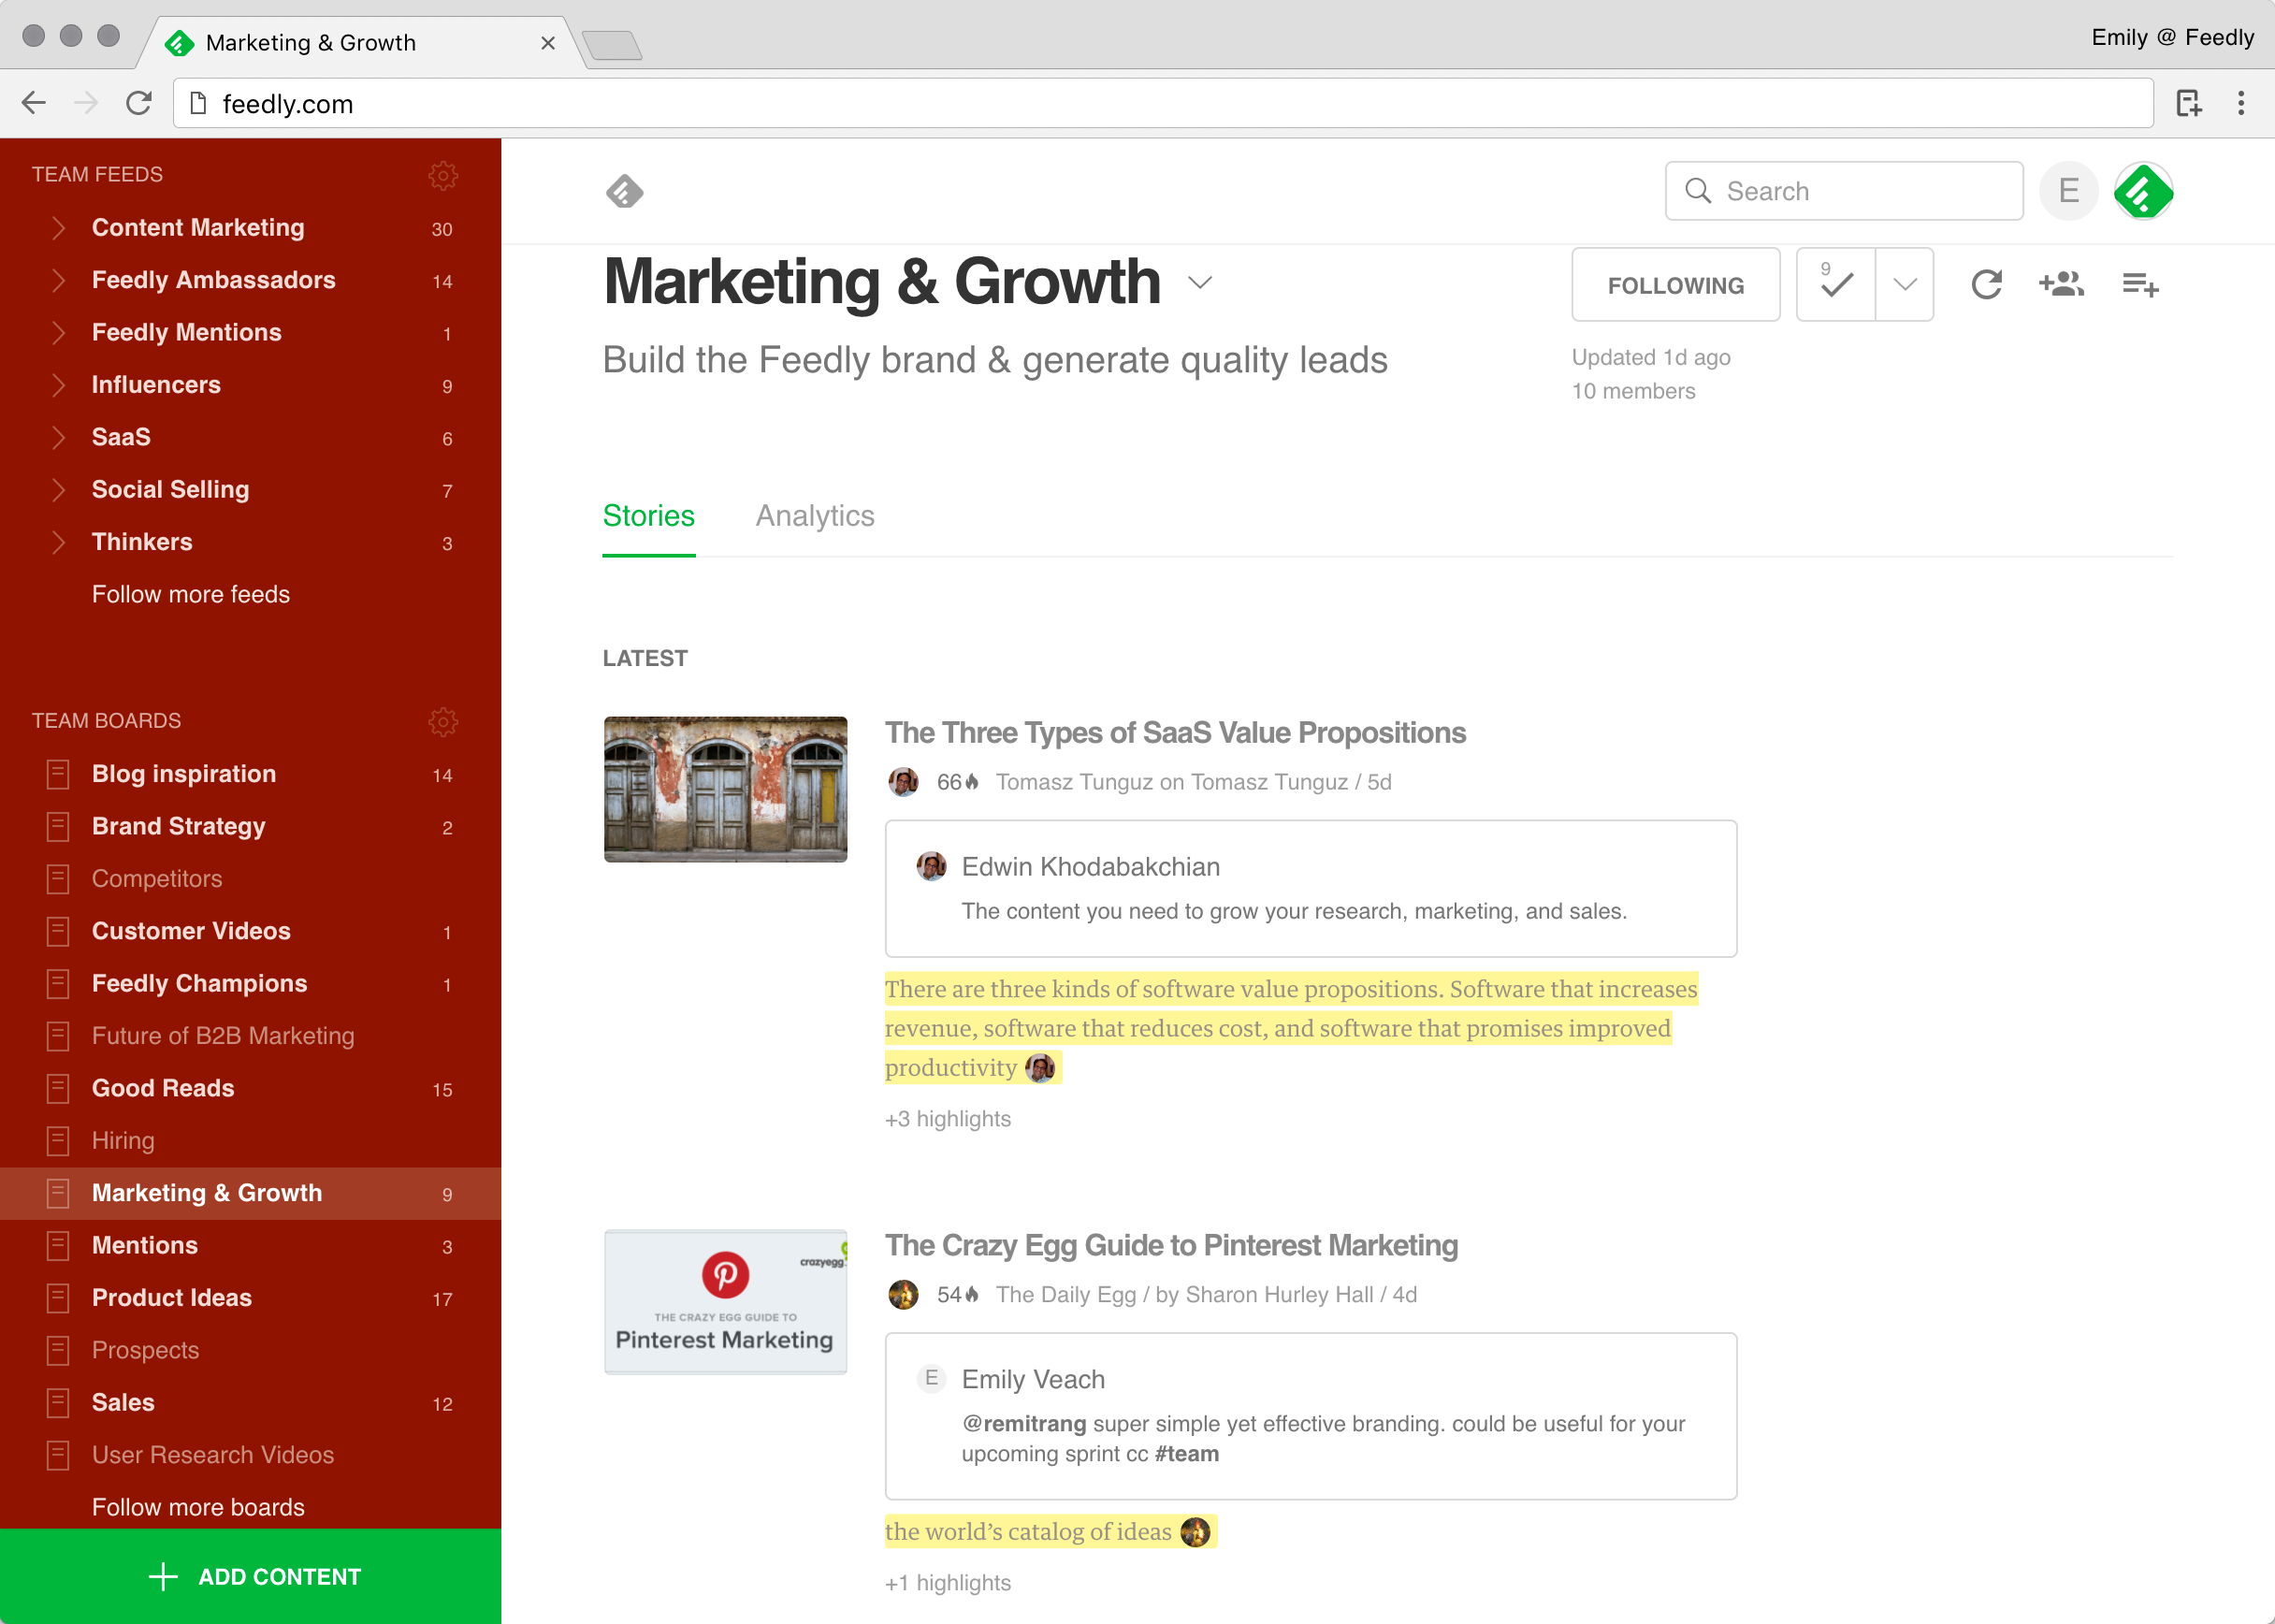 032217-marketing-growth-board-2.png